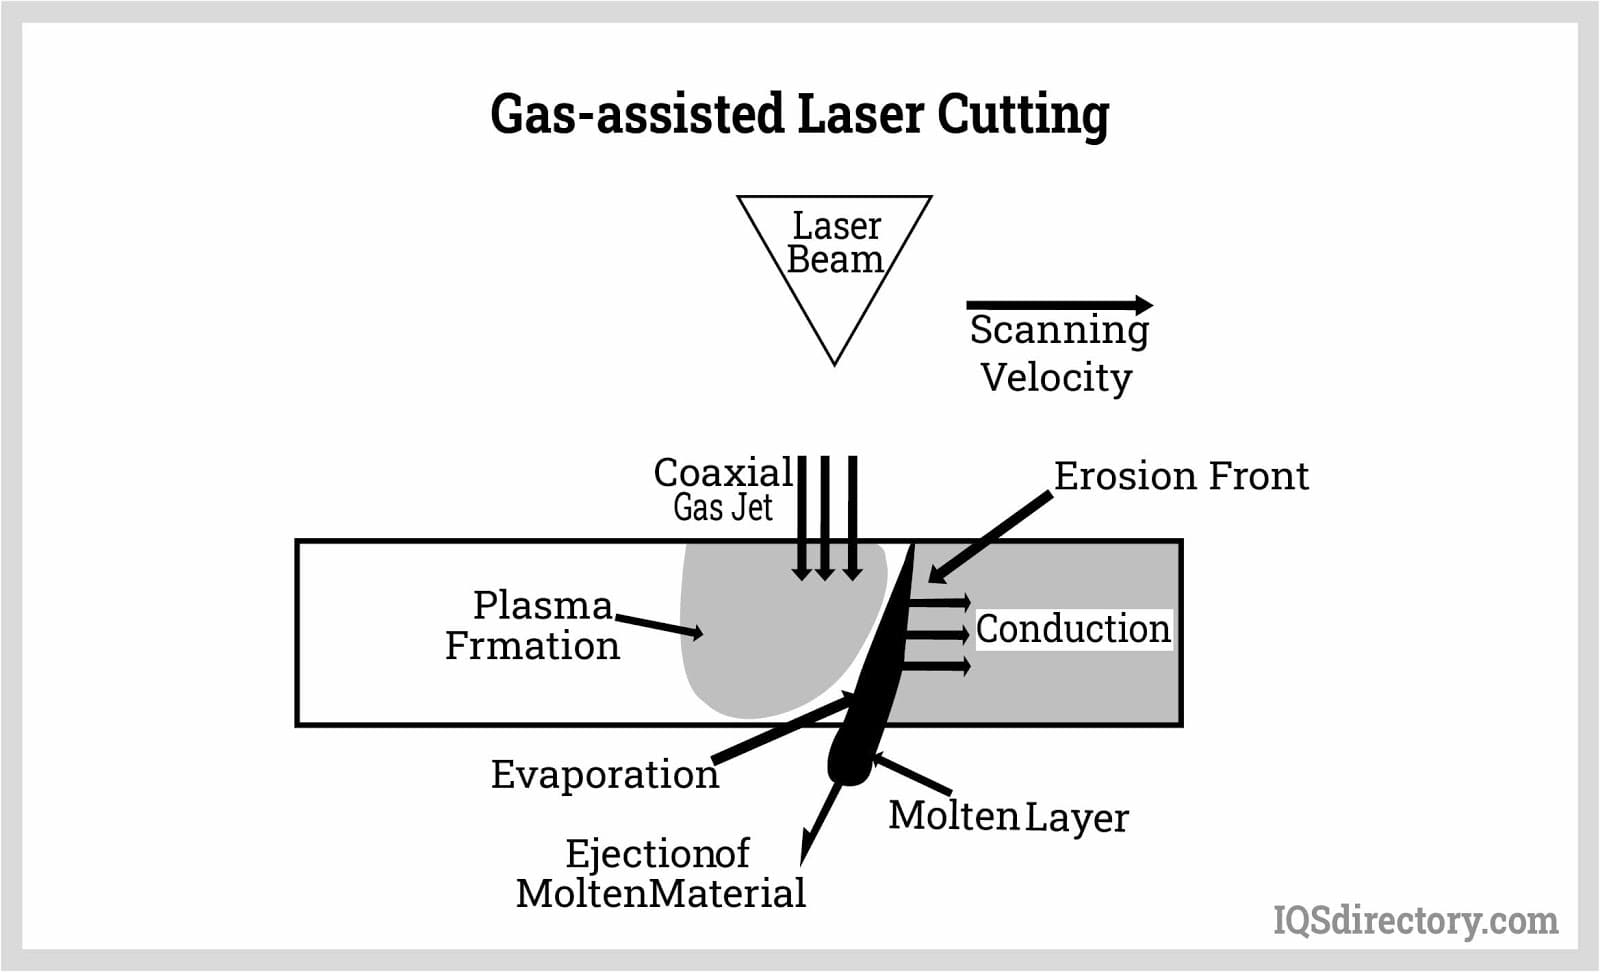 Gas-assisted Laser Cutting